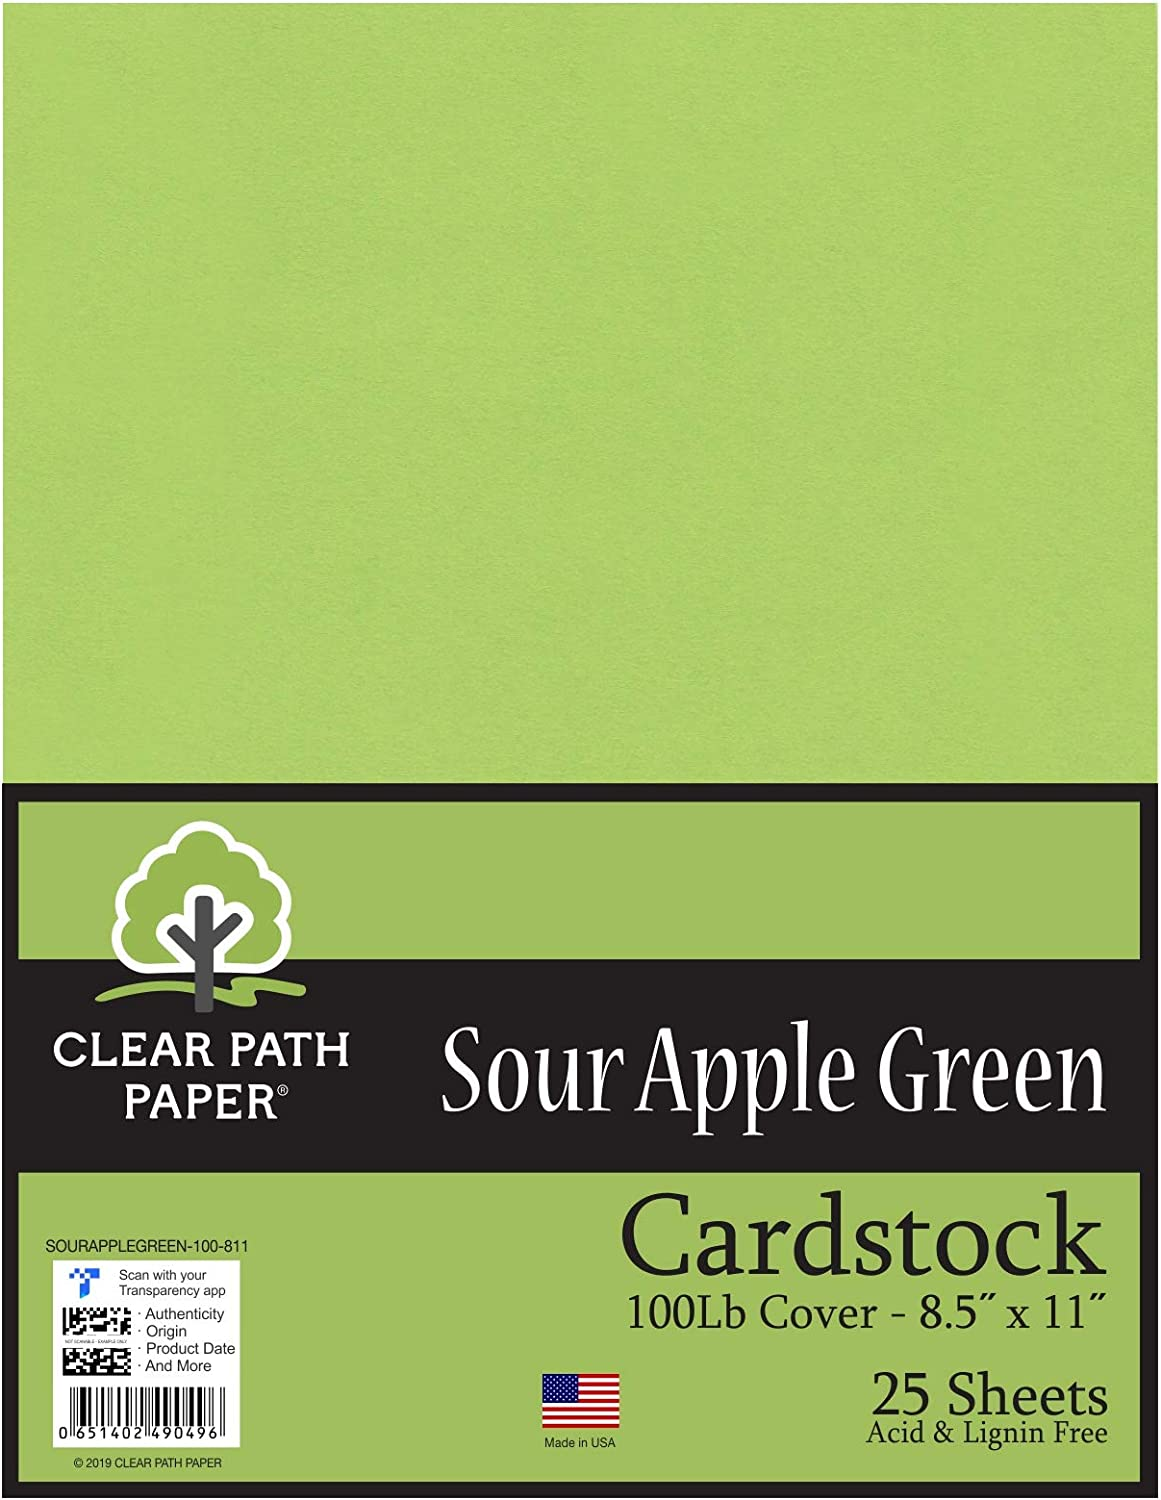 Sour Apple Green Cardstock - 8.5 x 11 inch - 100Lb Cover - 25 Sheets - Clear Path Paper